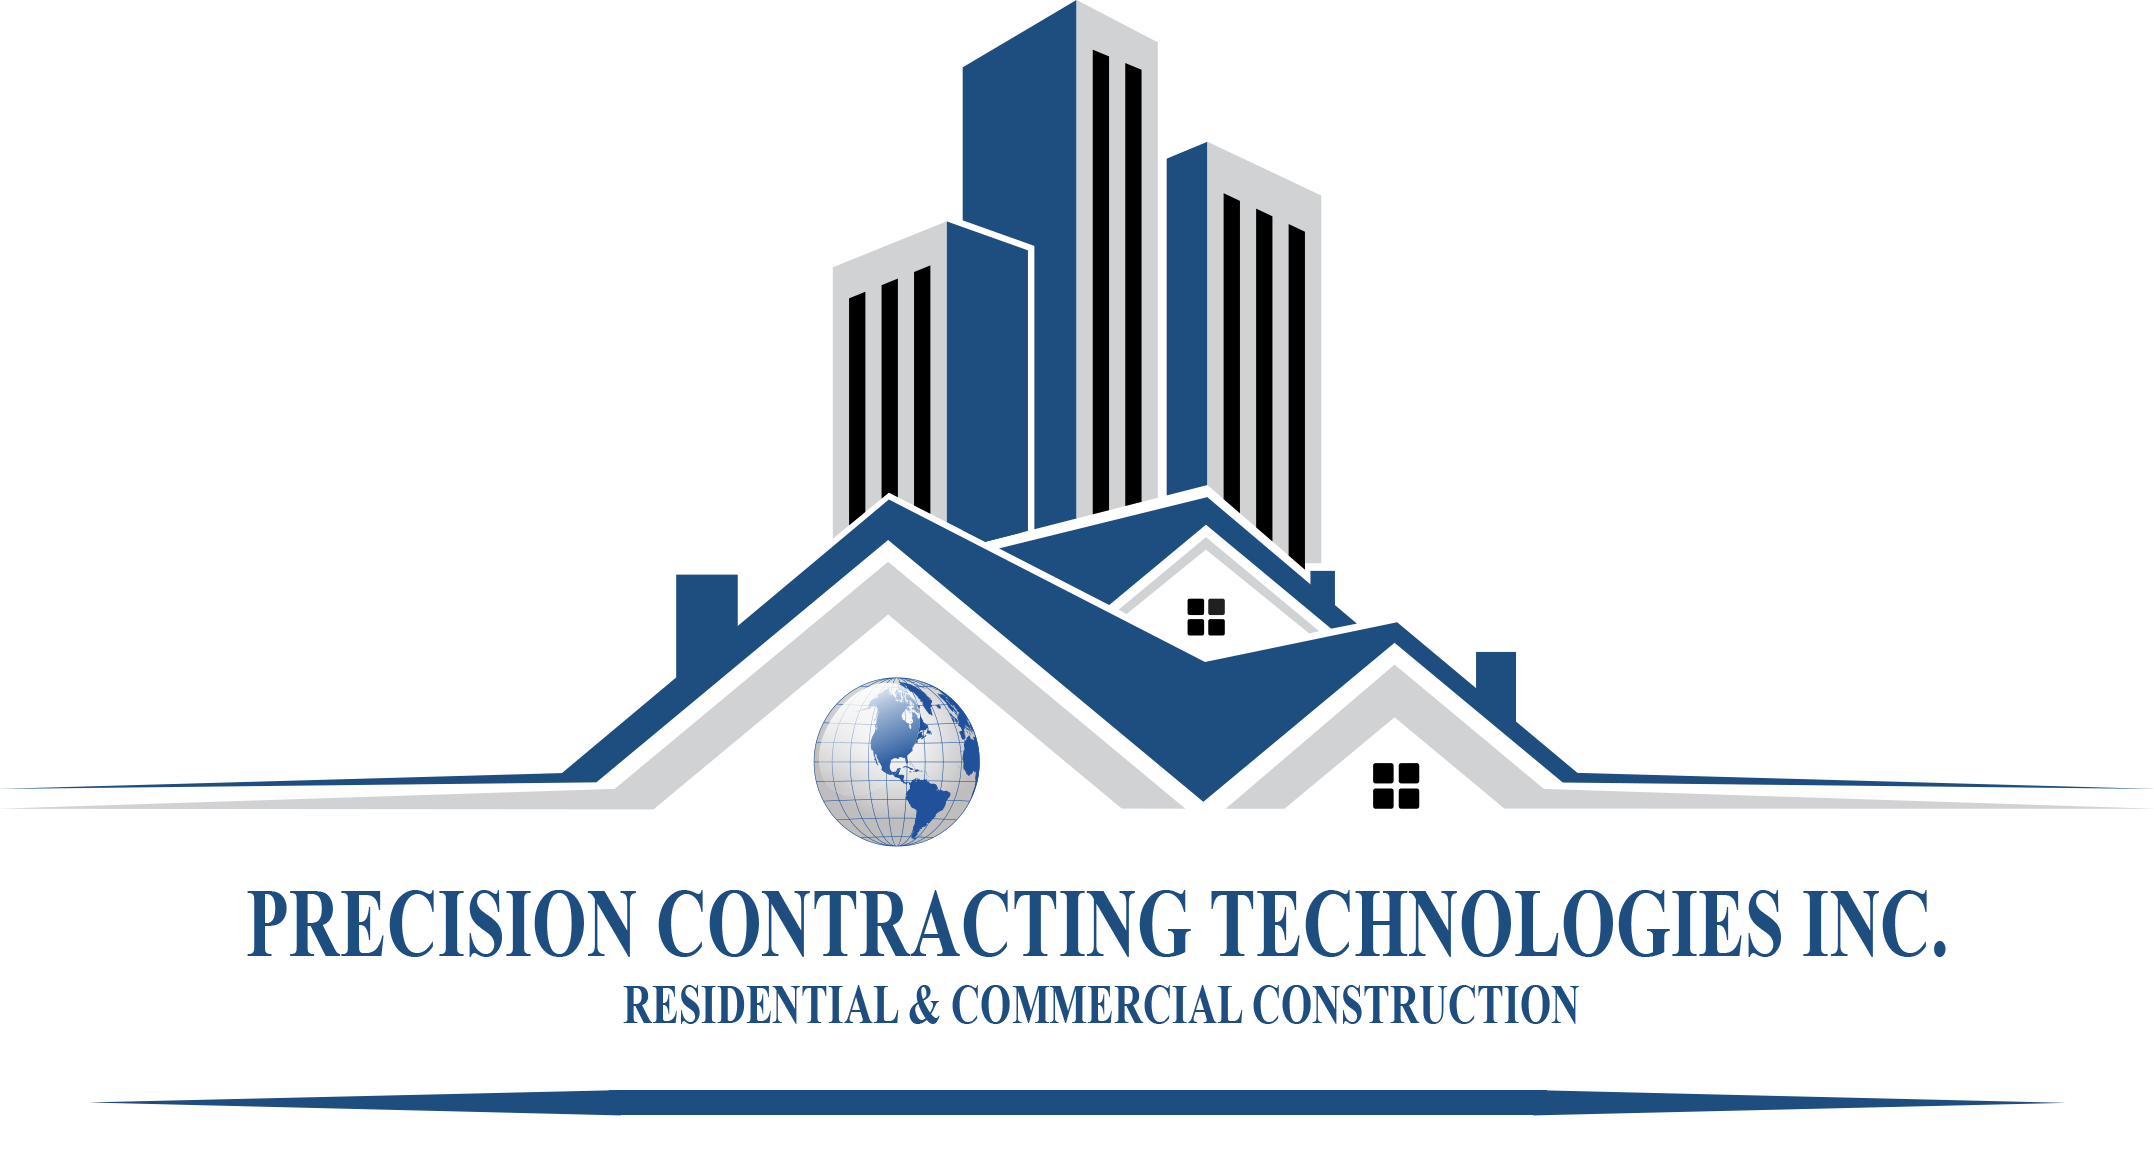 Precision Contracting Technologies